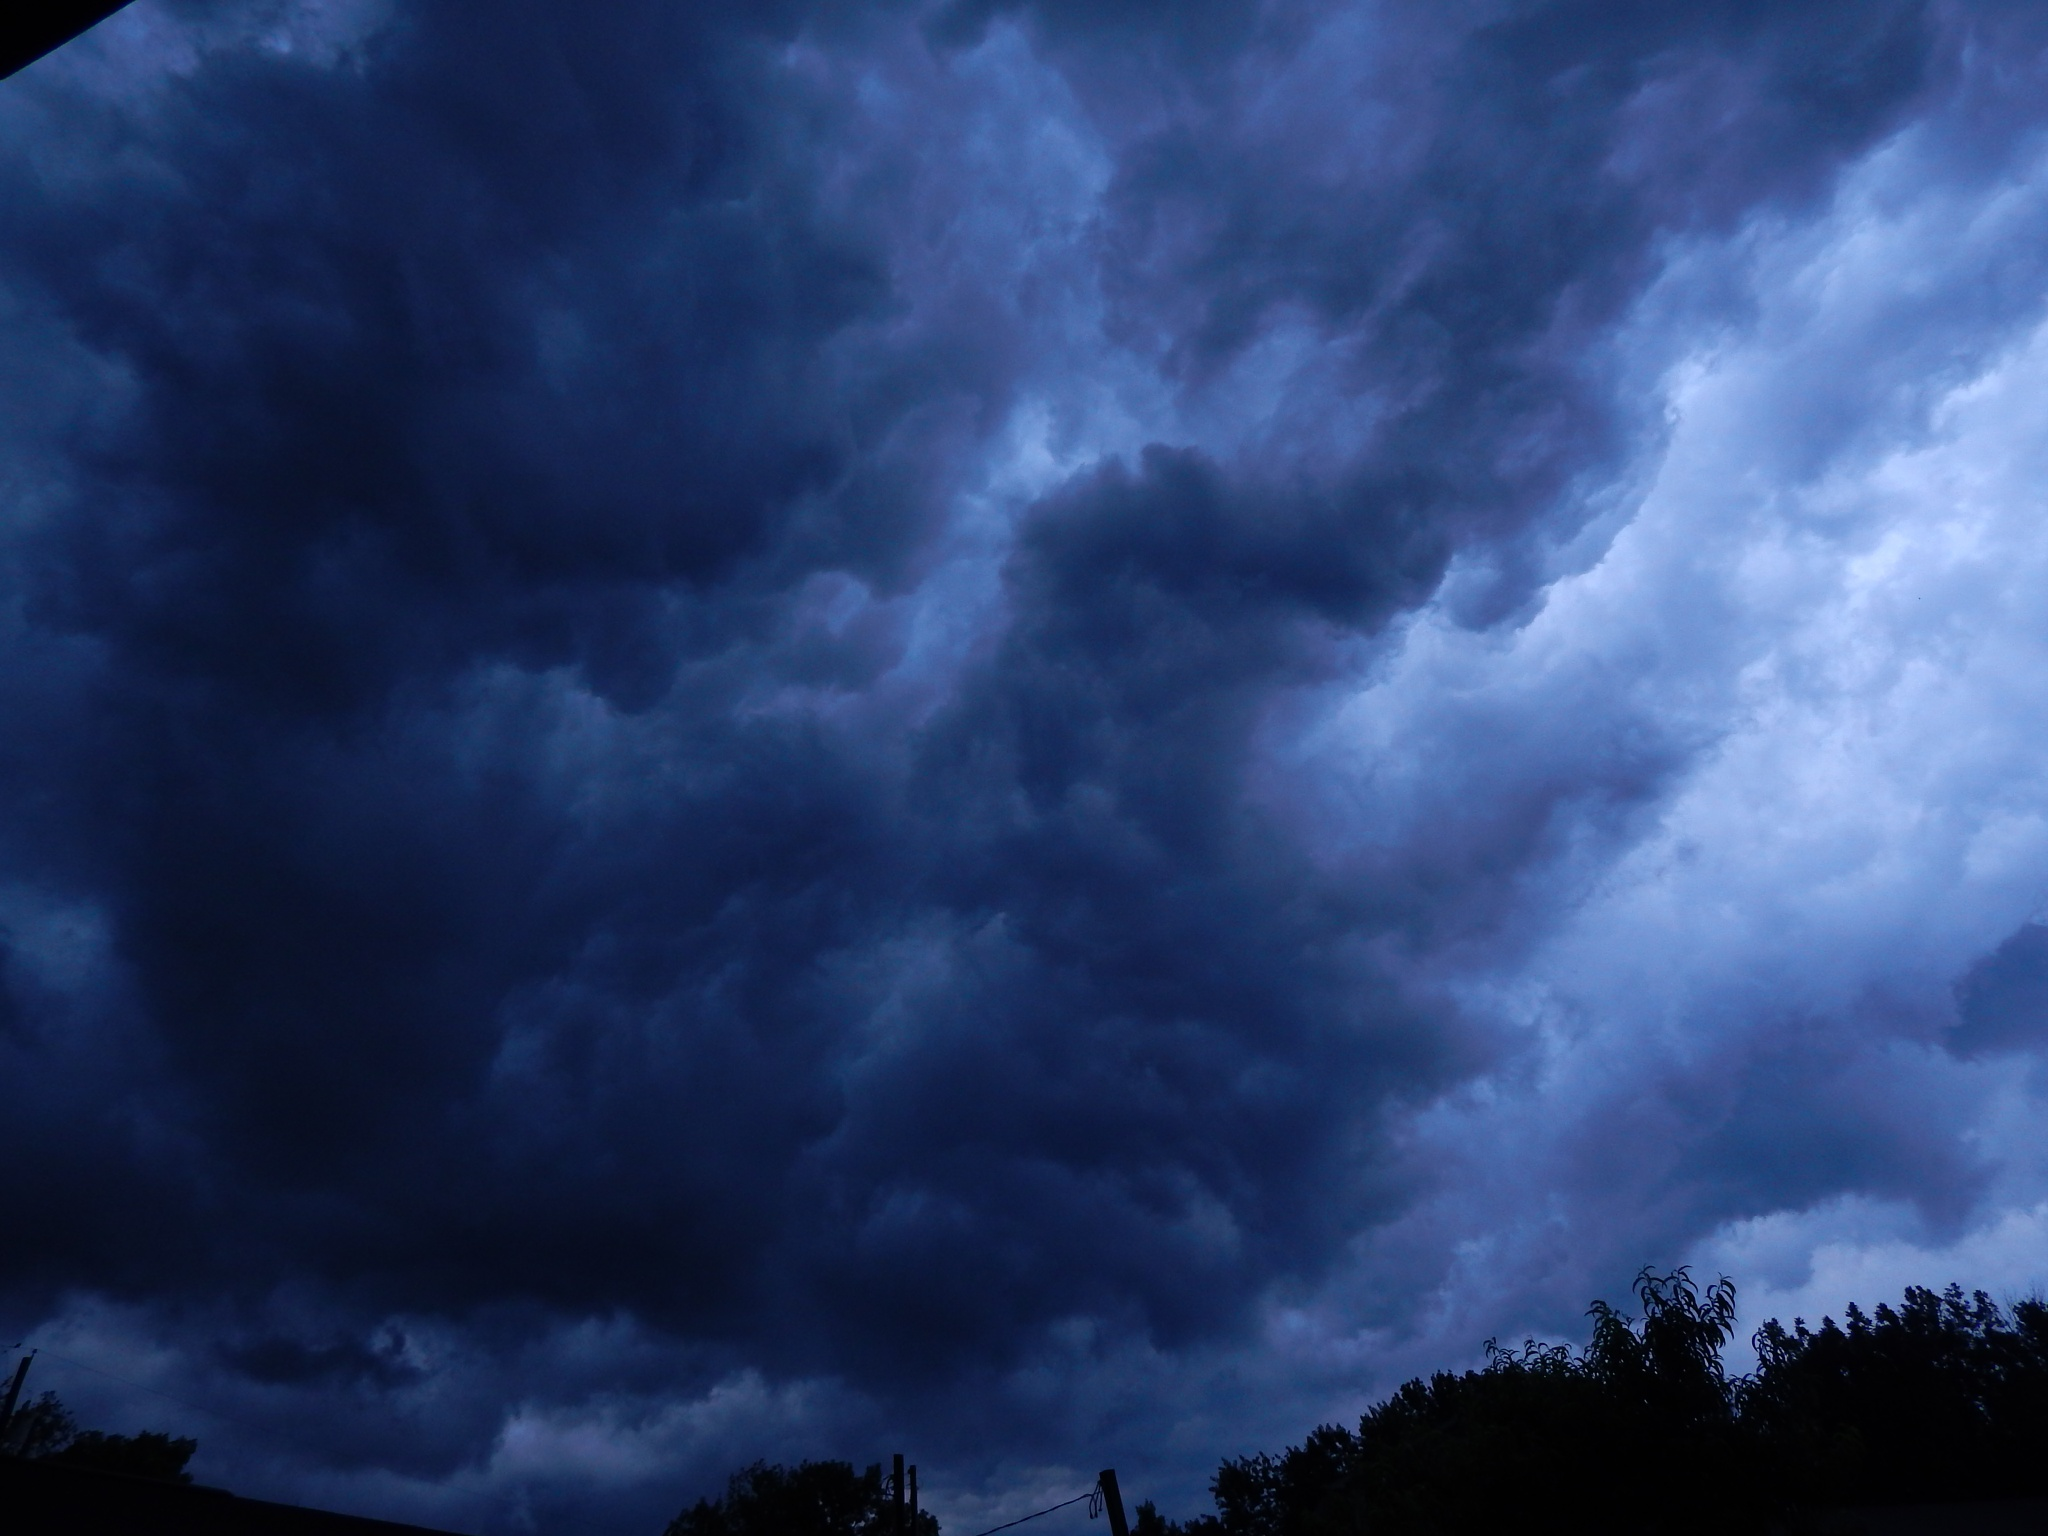 Angry Skies by Maria Metheny